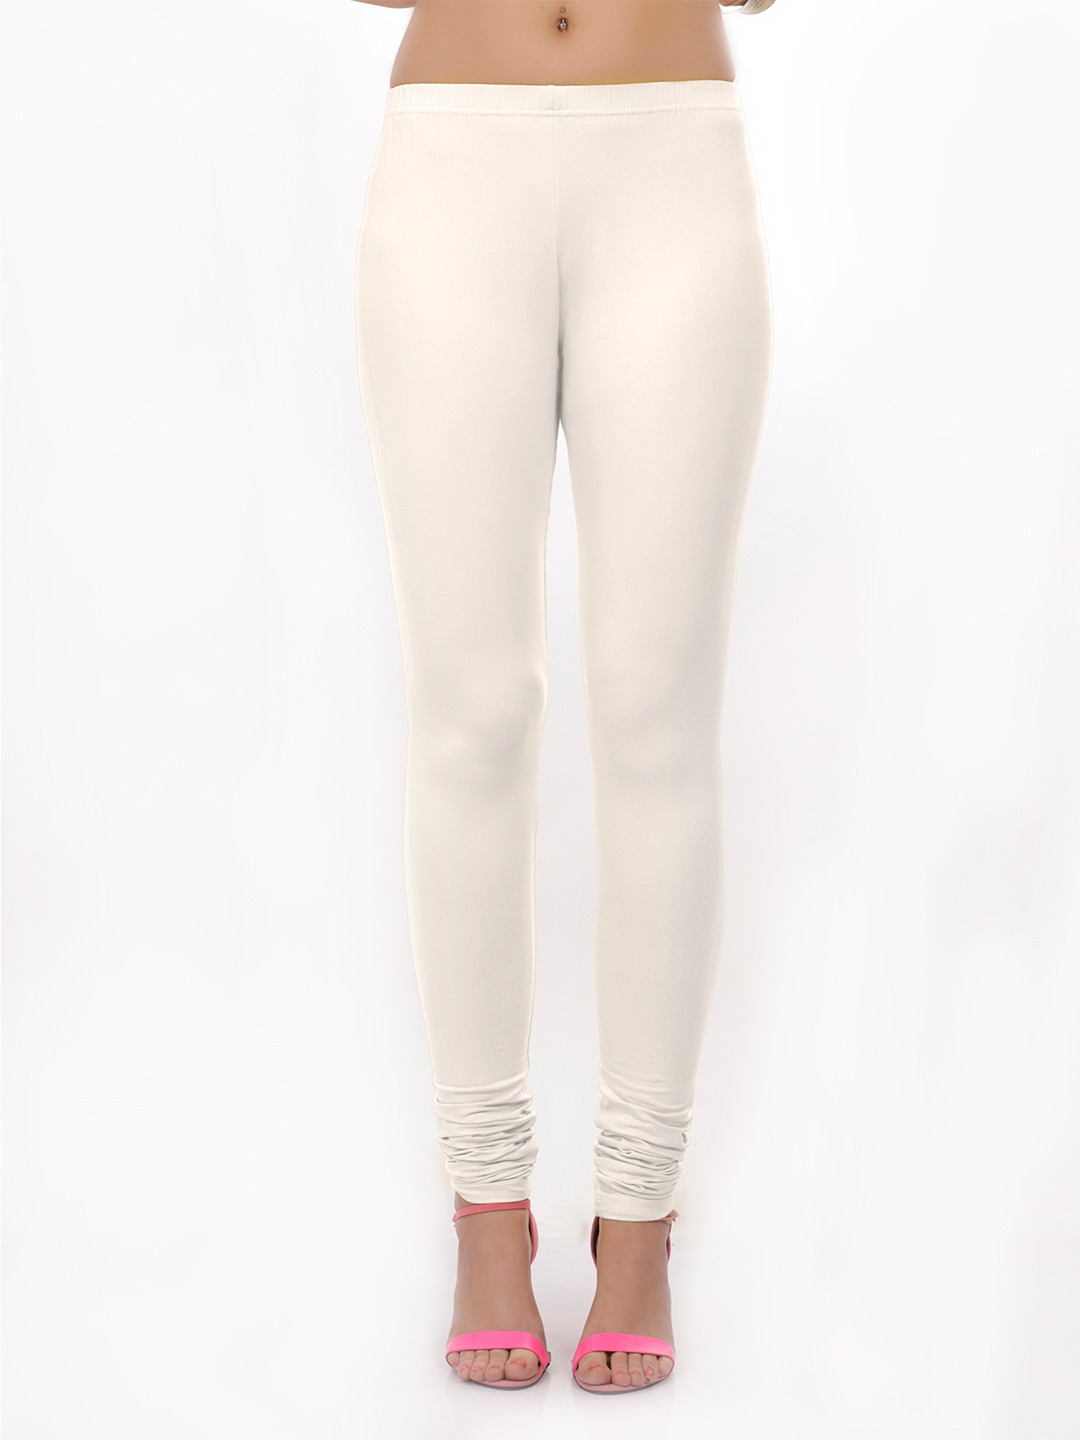 Sonari Womens White Leggings